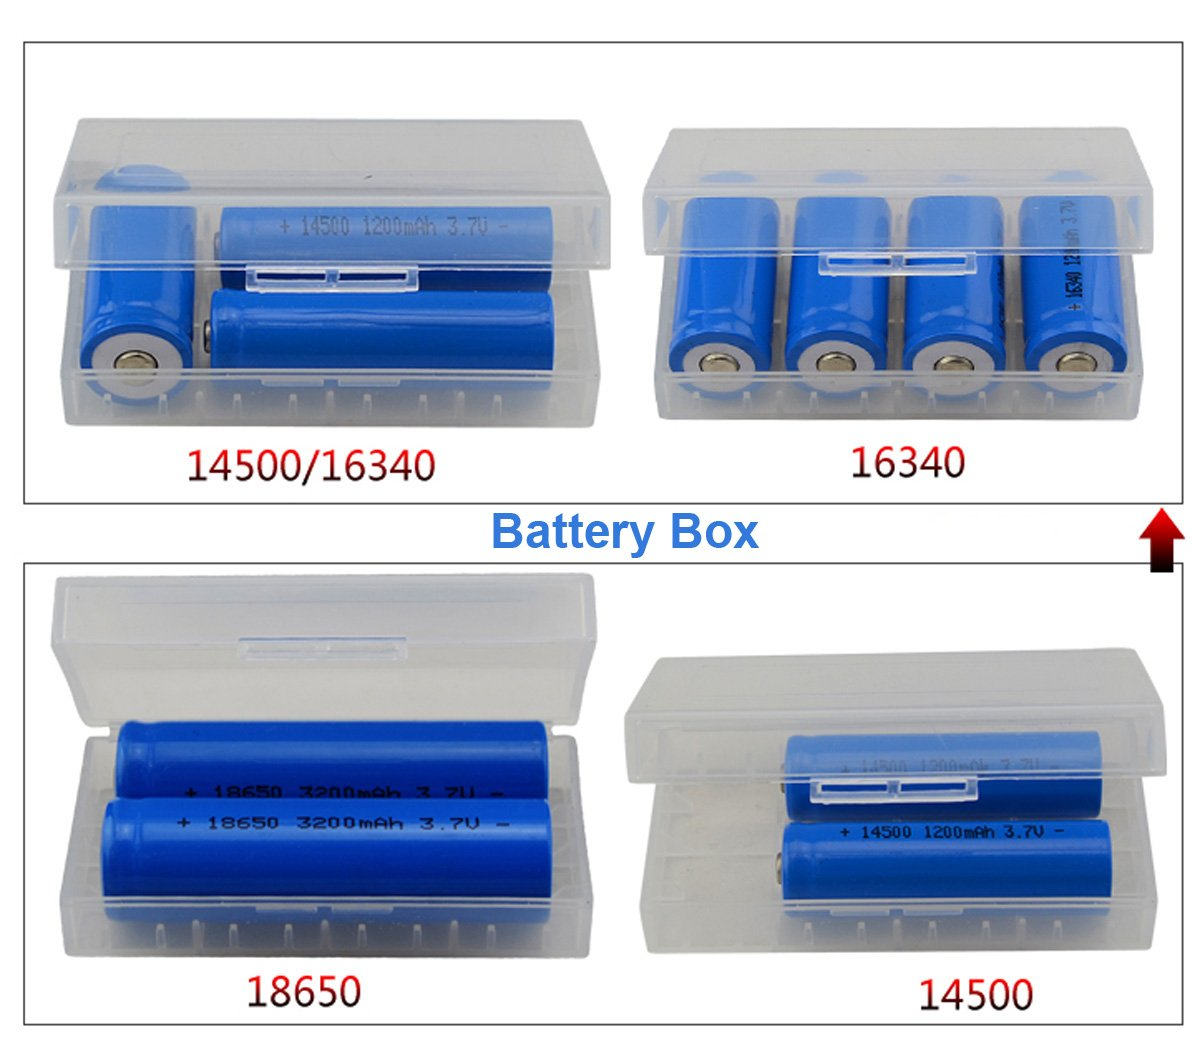 Details About 3 X Case 18650 Battery Box With Protection Circuit 37v 4pcs Batteries 3000mah Li Ion Rechargeable Usb Charger For 26650 14500 Widely Used Flashlight